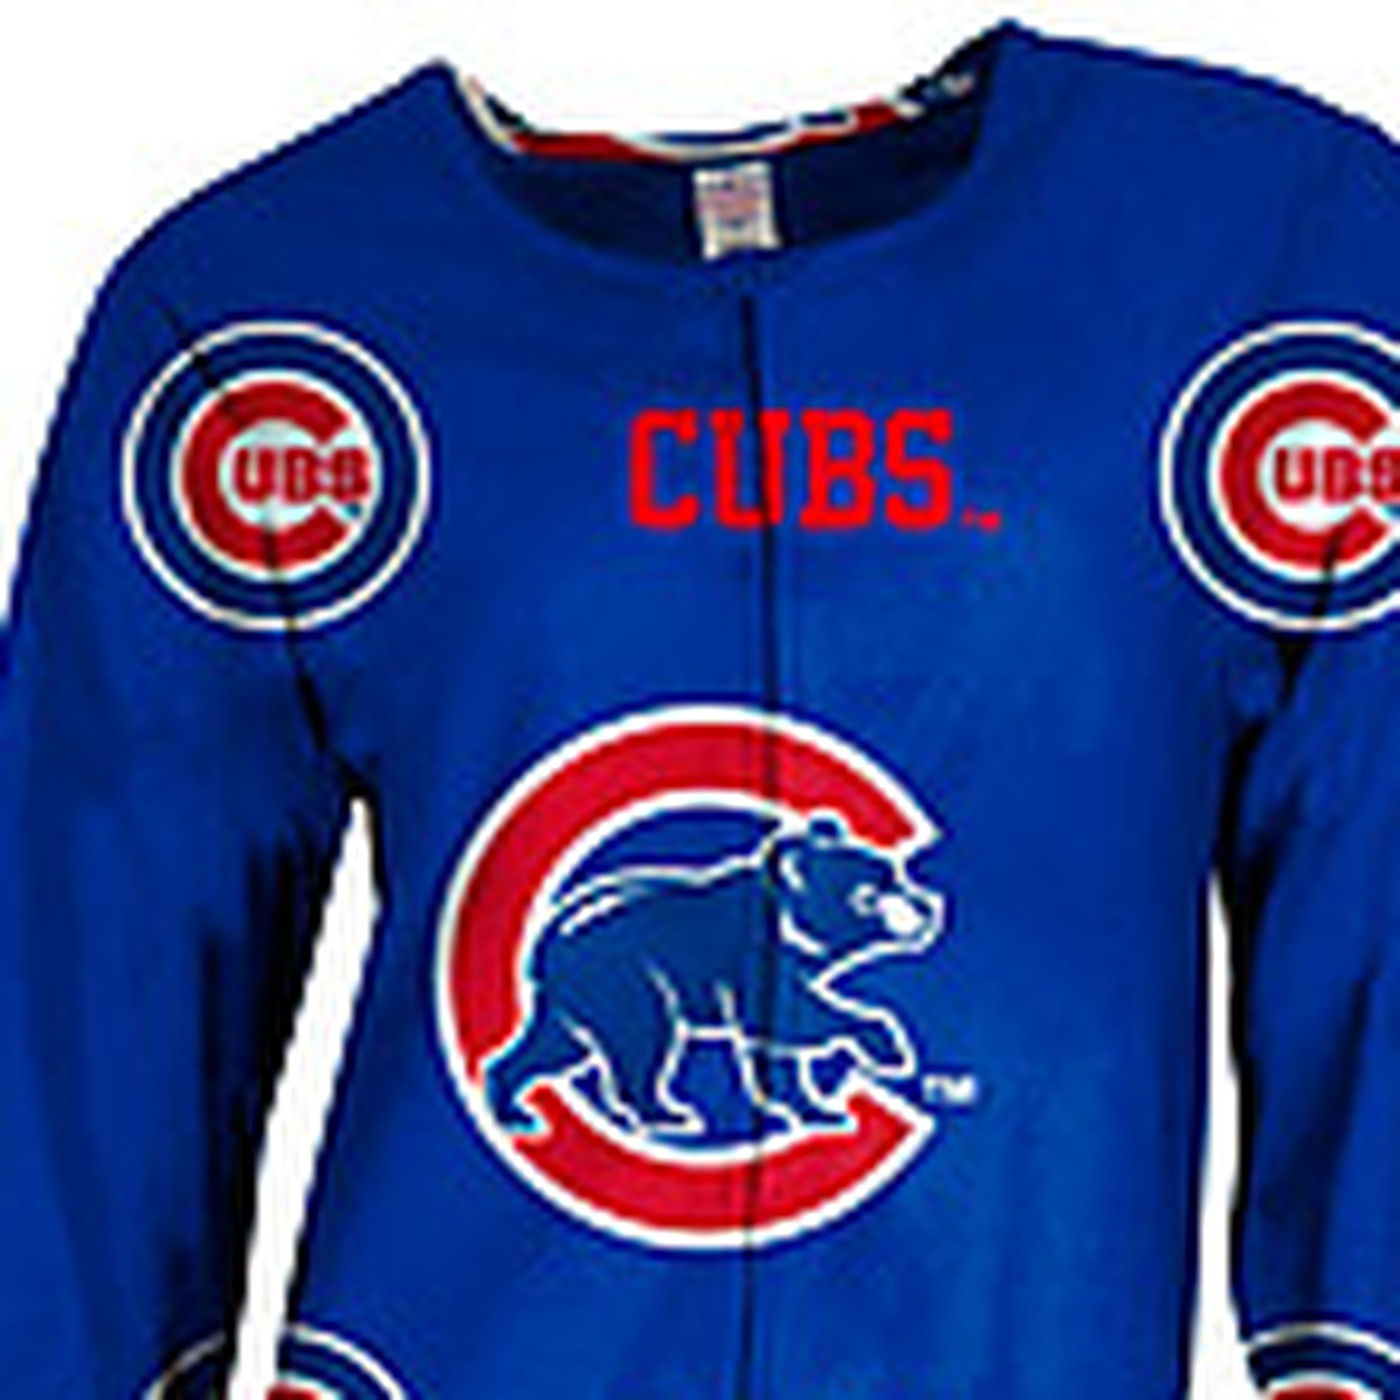 Cubs Shop Clearance Rack The Good The Bad and The Useful Bleed